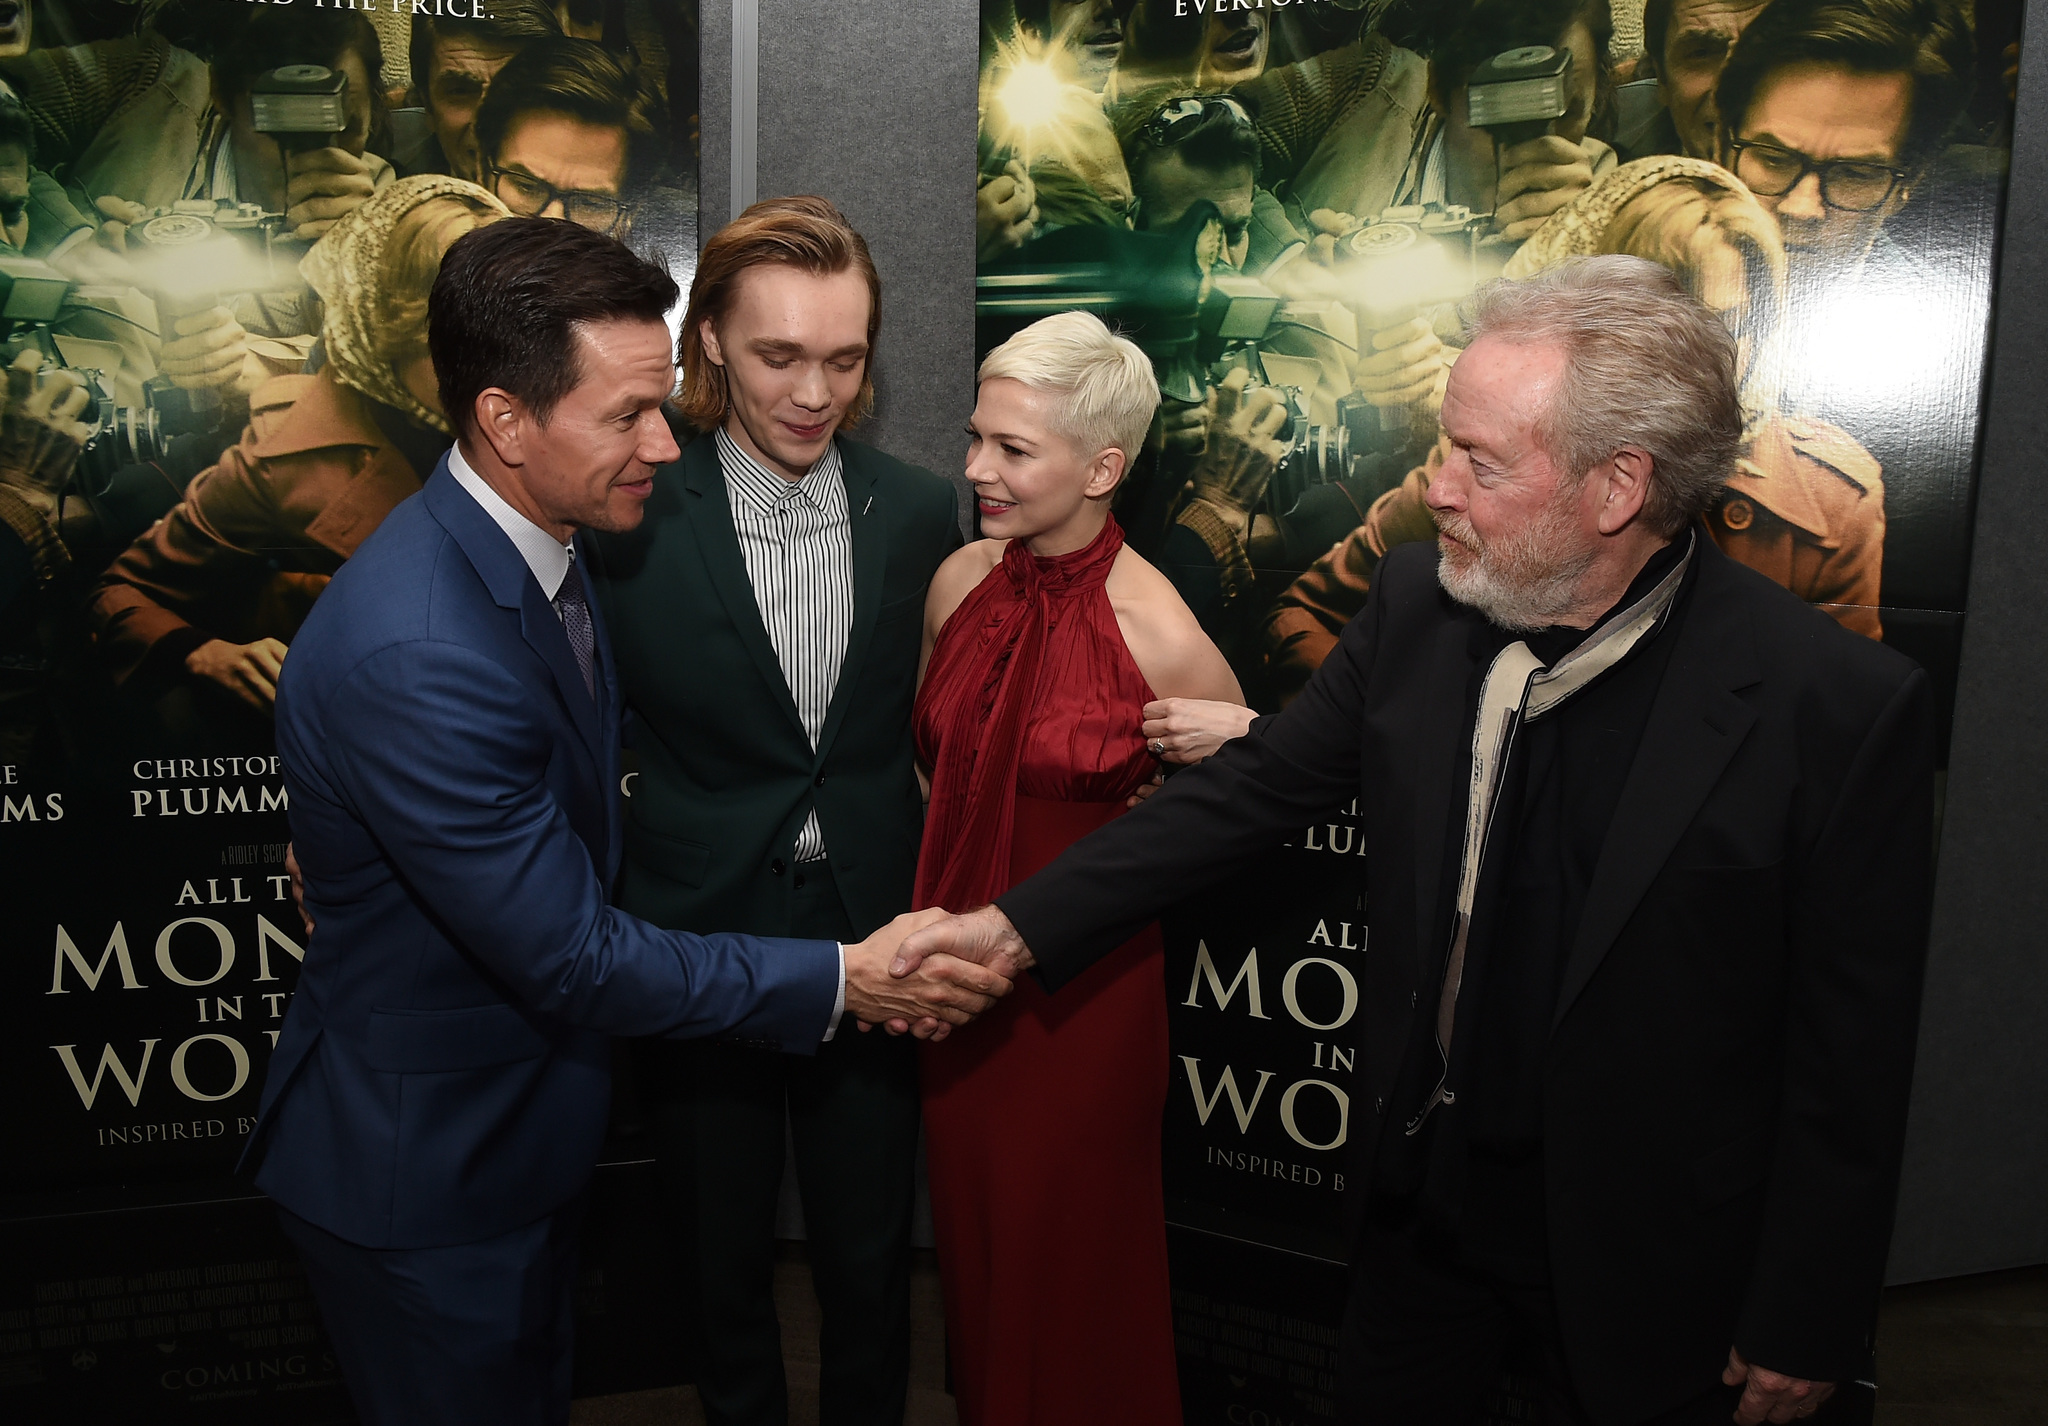 Mark Wahlberg, Ridley Scott, Michelle Williams, and Charlie Plummer